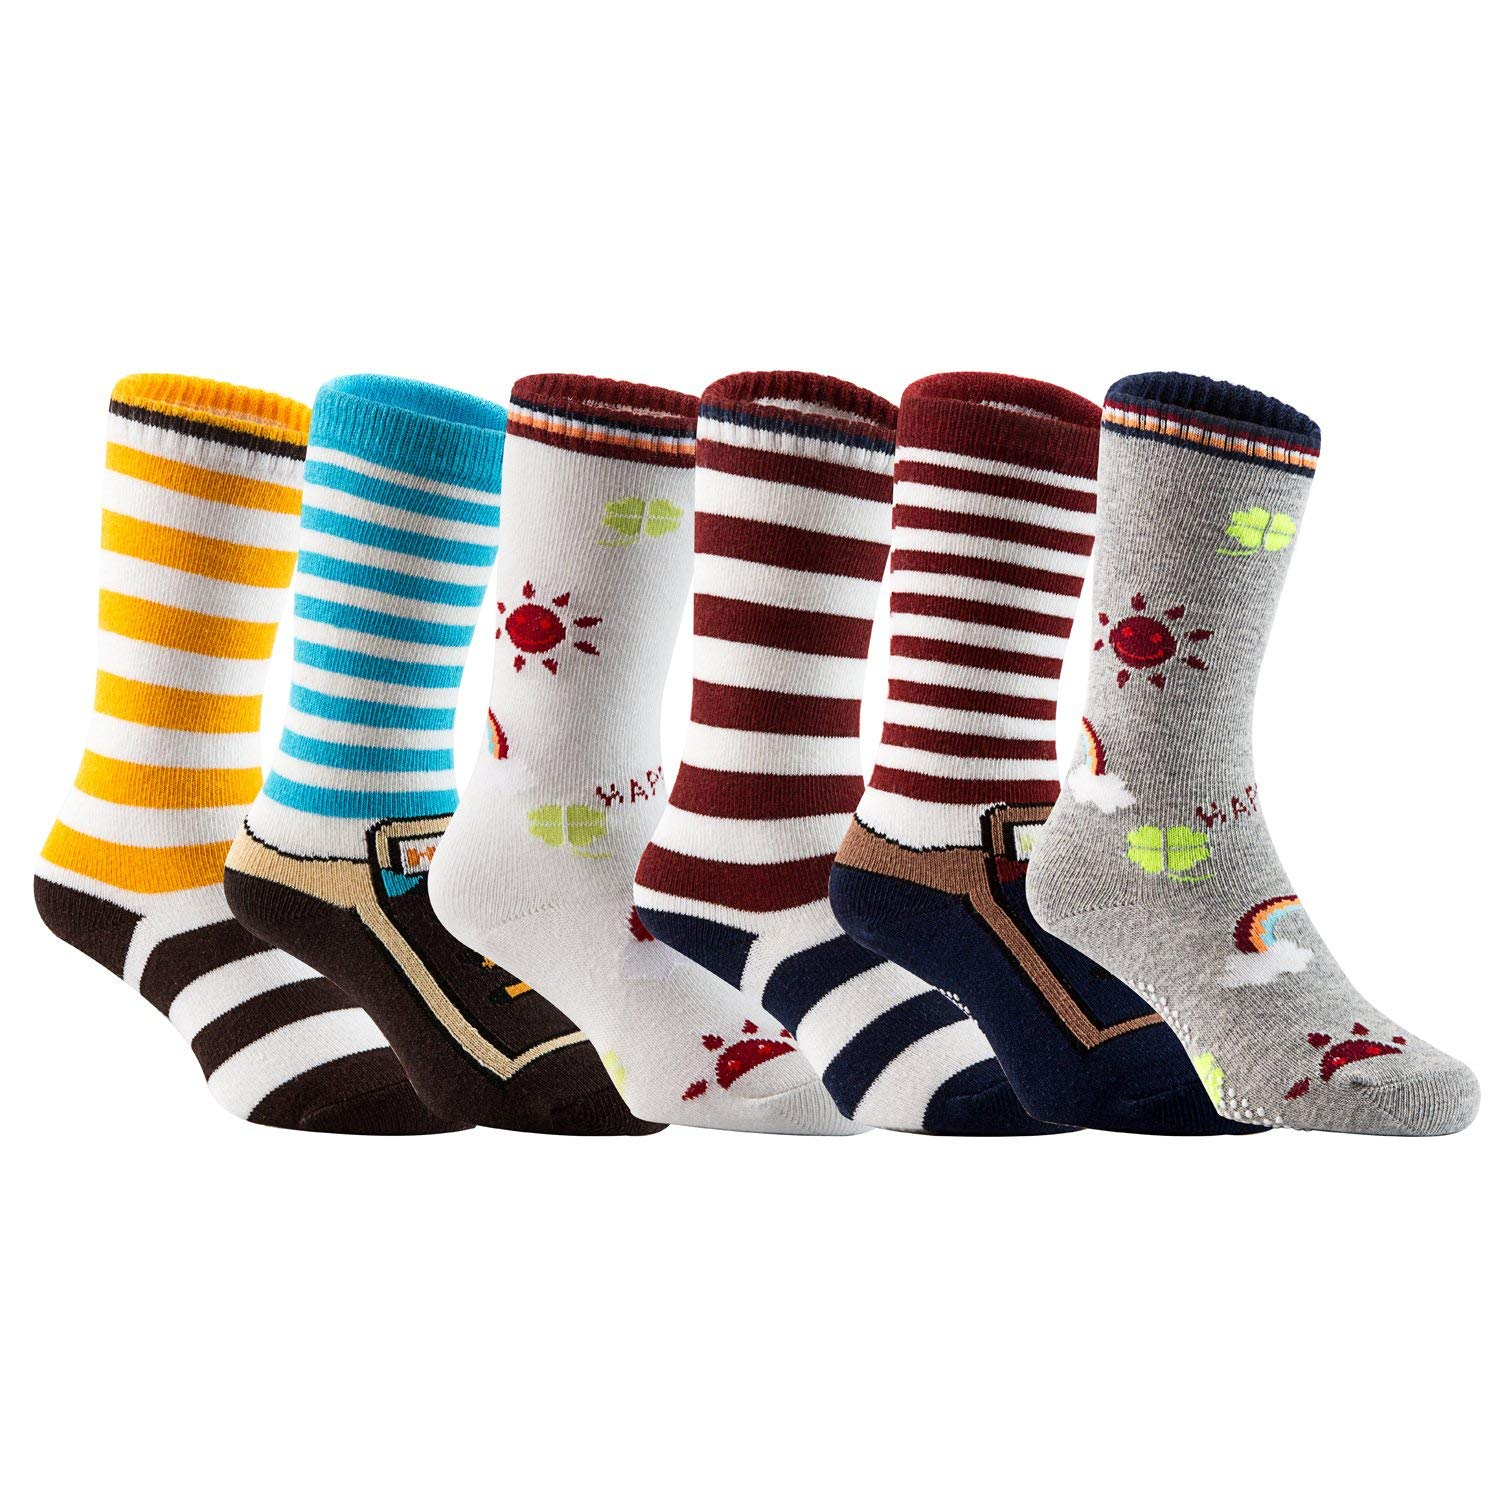 4b2870113 Get Quotations · Lian LifeStyle Baby Children 6 Pairs Knee High Non-Skid  Non-Slip Cotton Socks